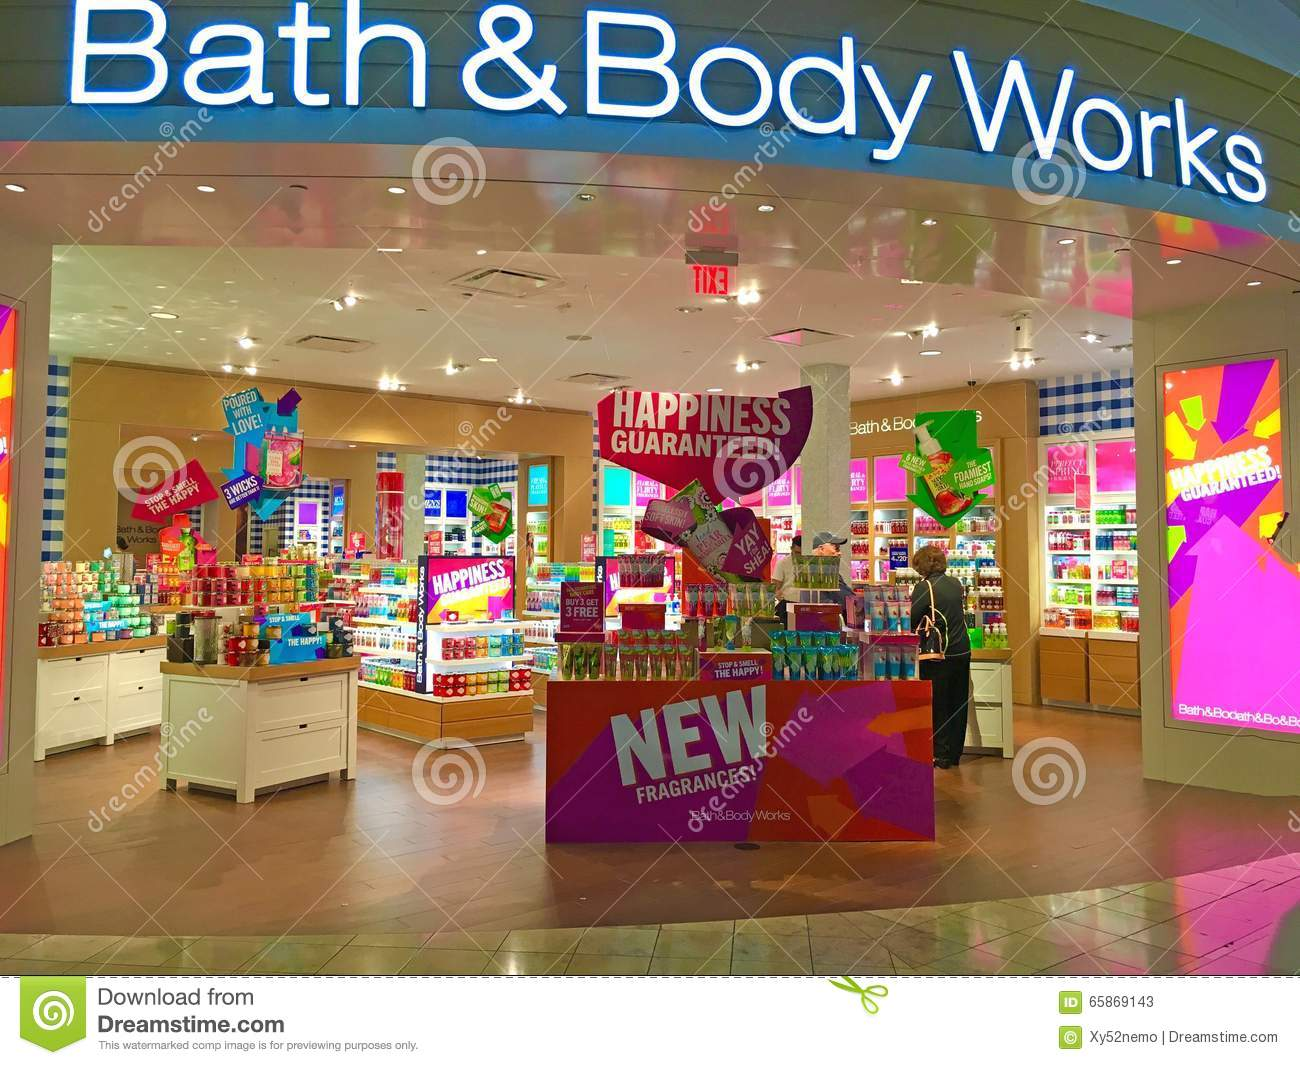 Bath and body works store editorial stock photo. Image of ...